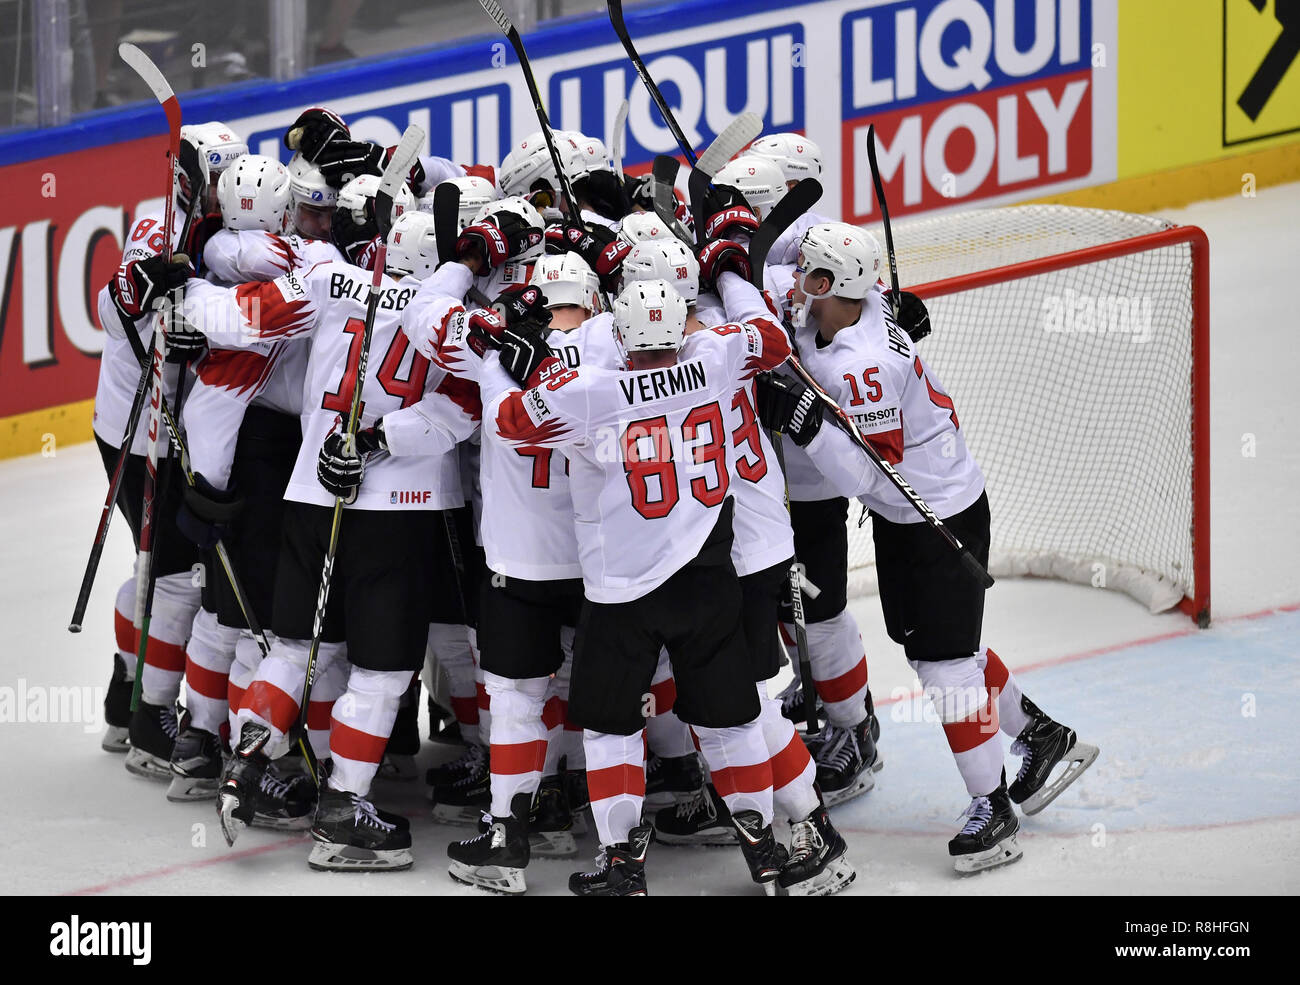 Herning, Denmark. 17th May, 2017. Team Switzerland is celebrating winning the quarterfinal between Finland and Switzerland in the IIHF World Ice Hockey Championship 2018 in Jyske Bank Boxen, Herning, Denmark. Credit: Lars Moeller/ZUMA Wire/Alamy Live News Stock Photo